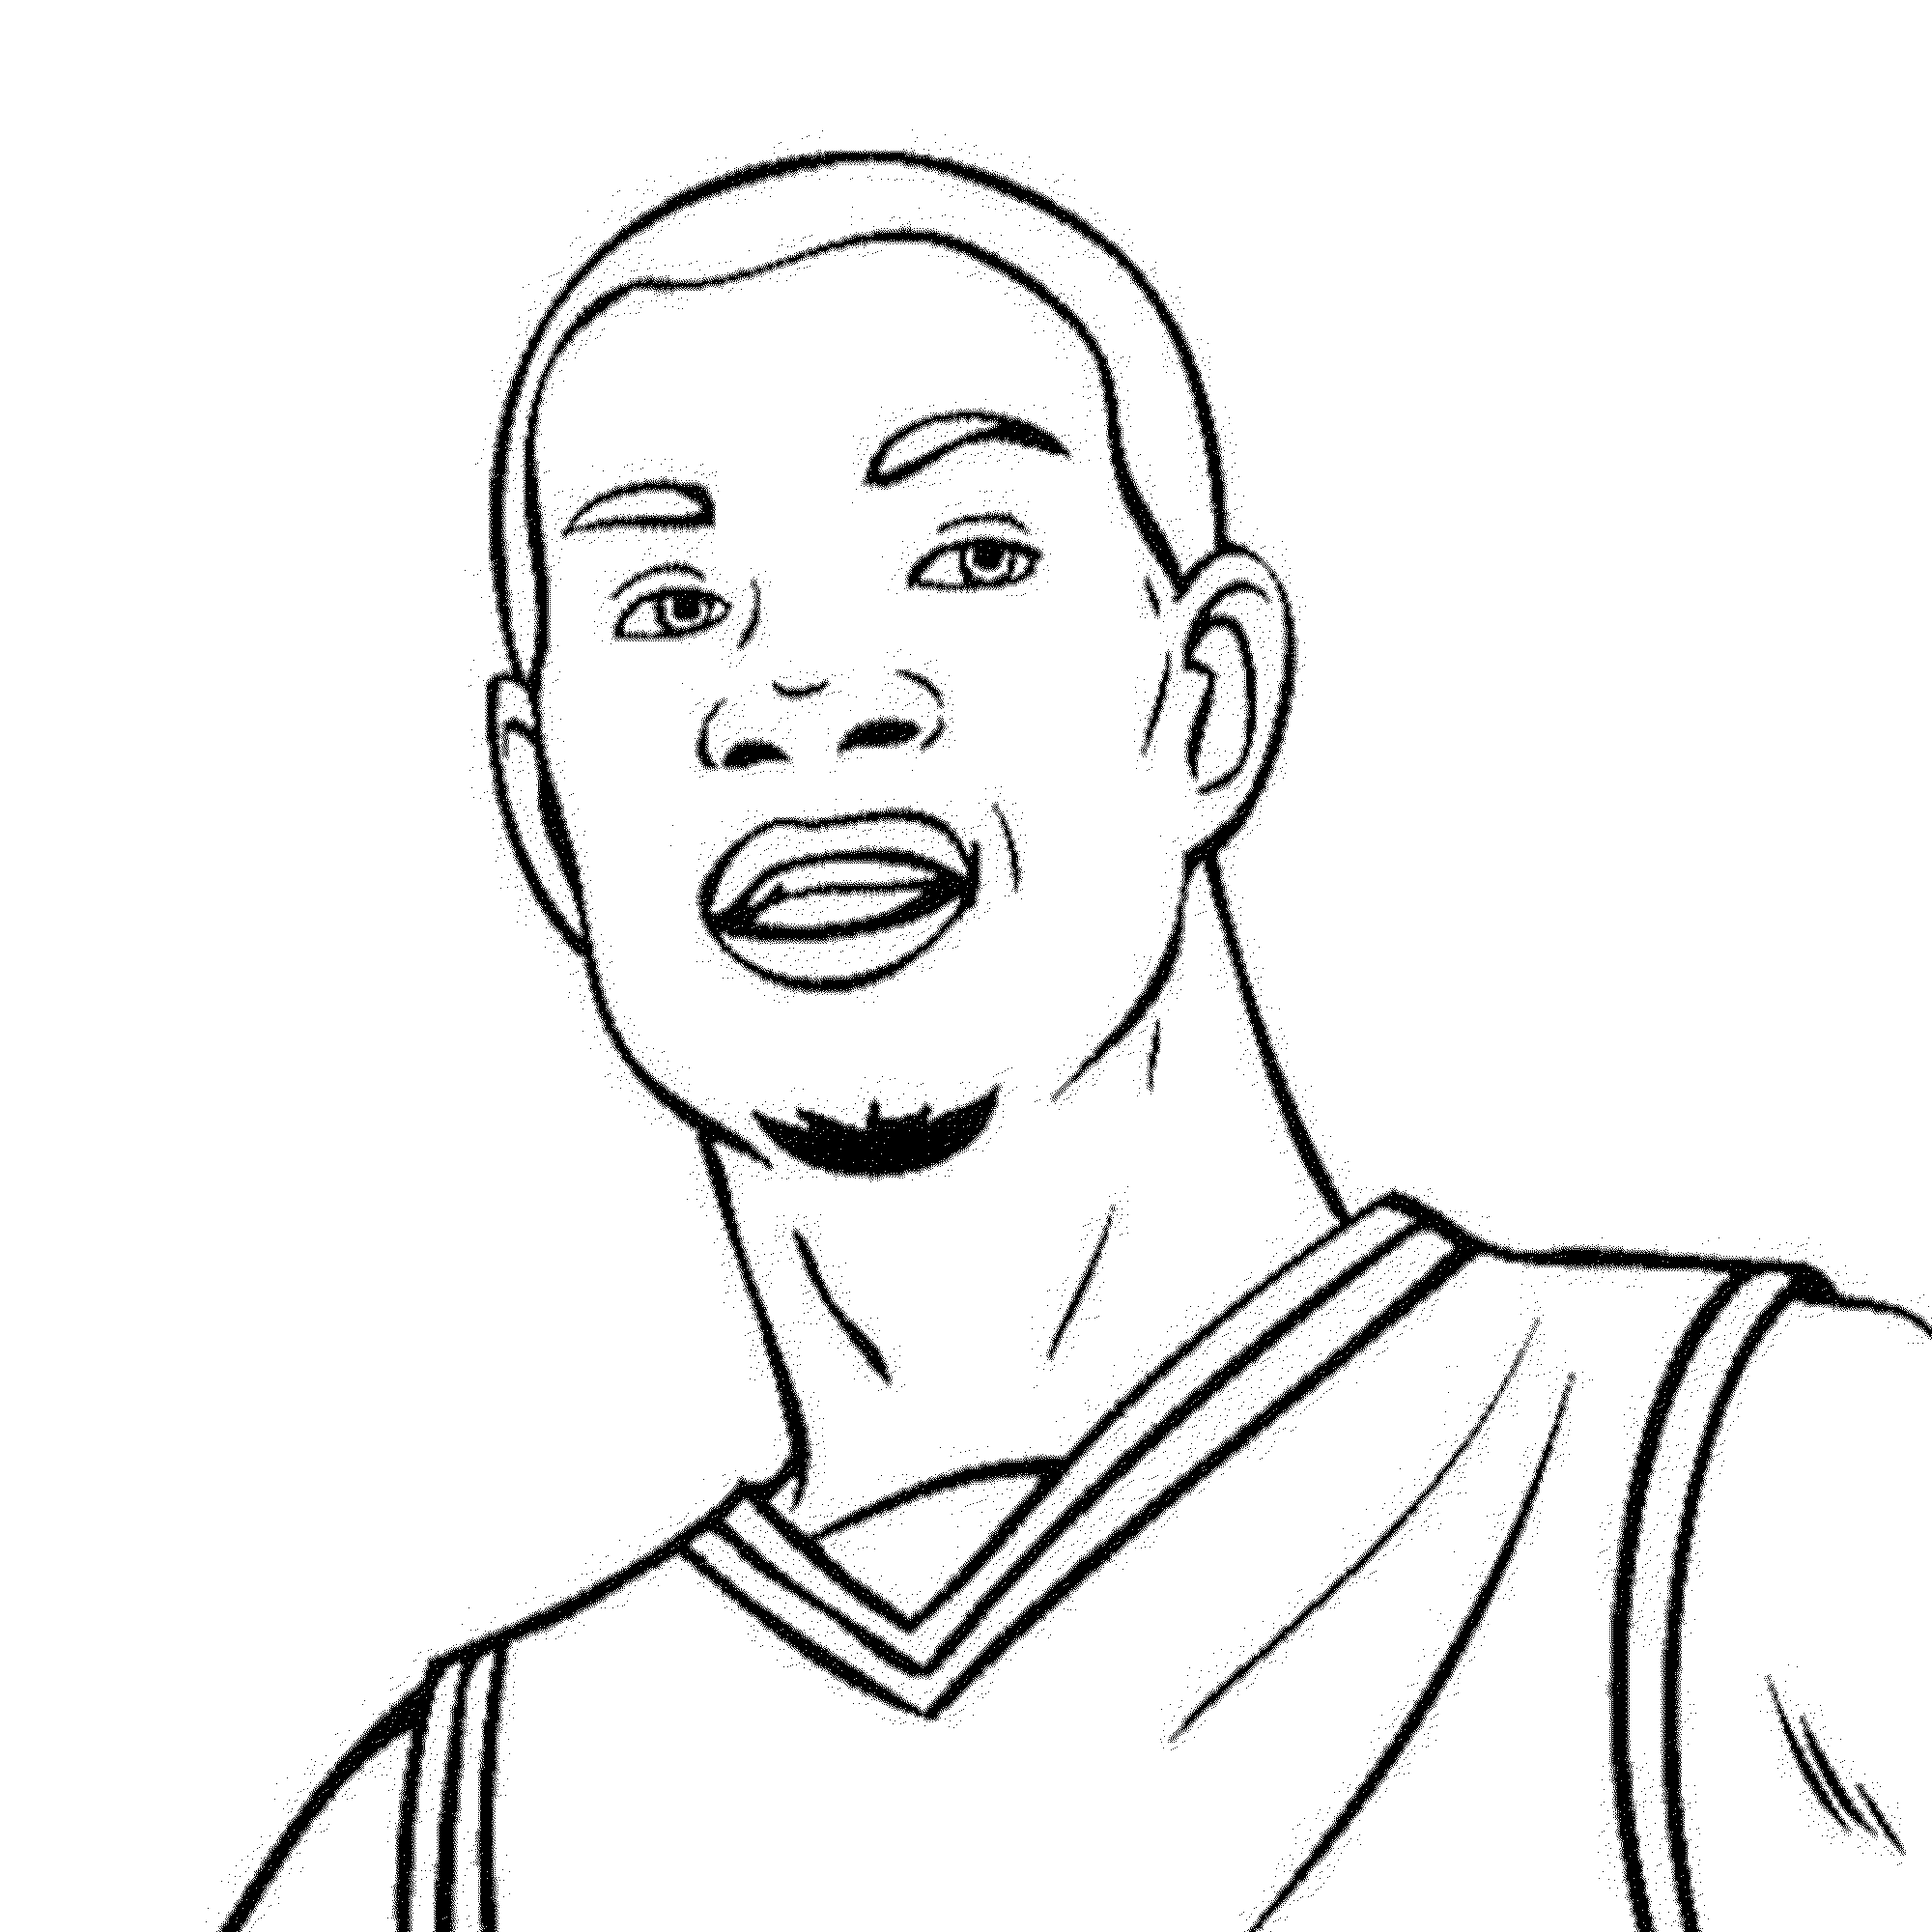 lebron coloring pages lebron james coloring pages free printable coloring pages pages coloring lebron